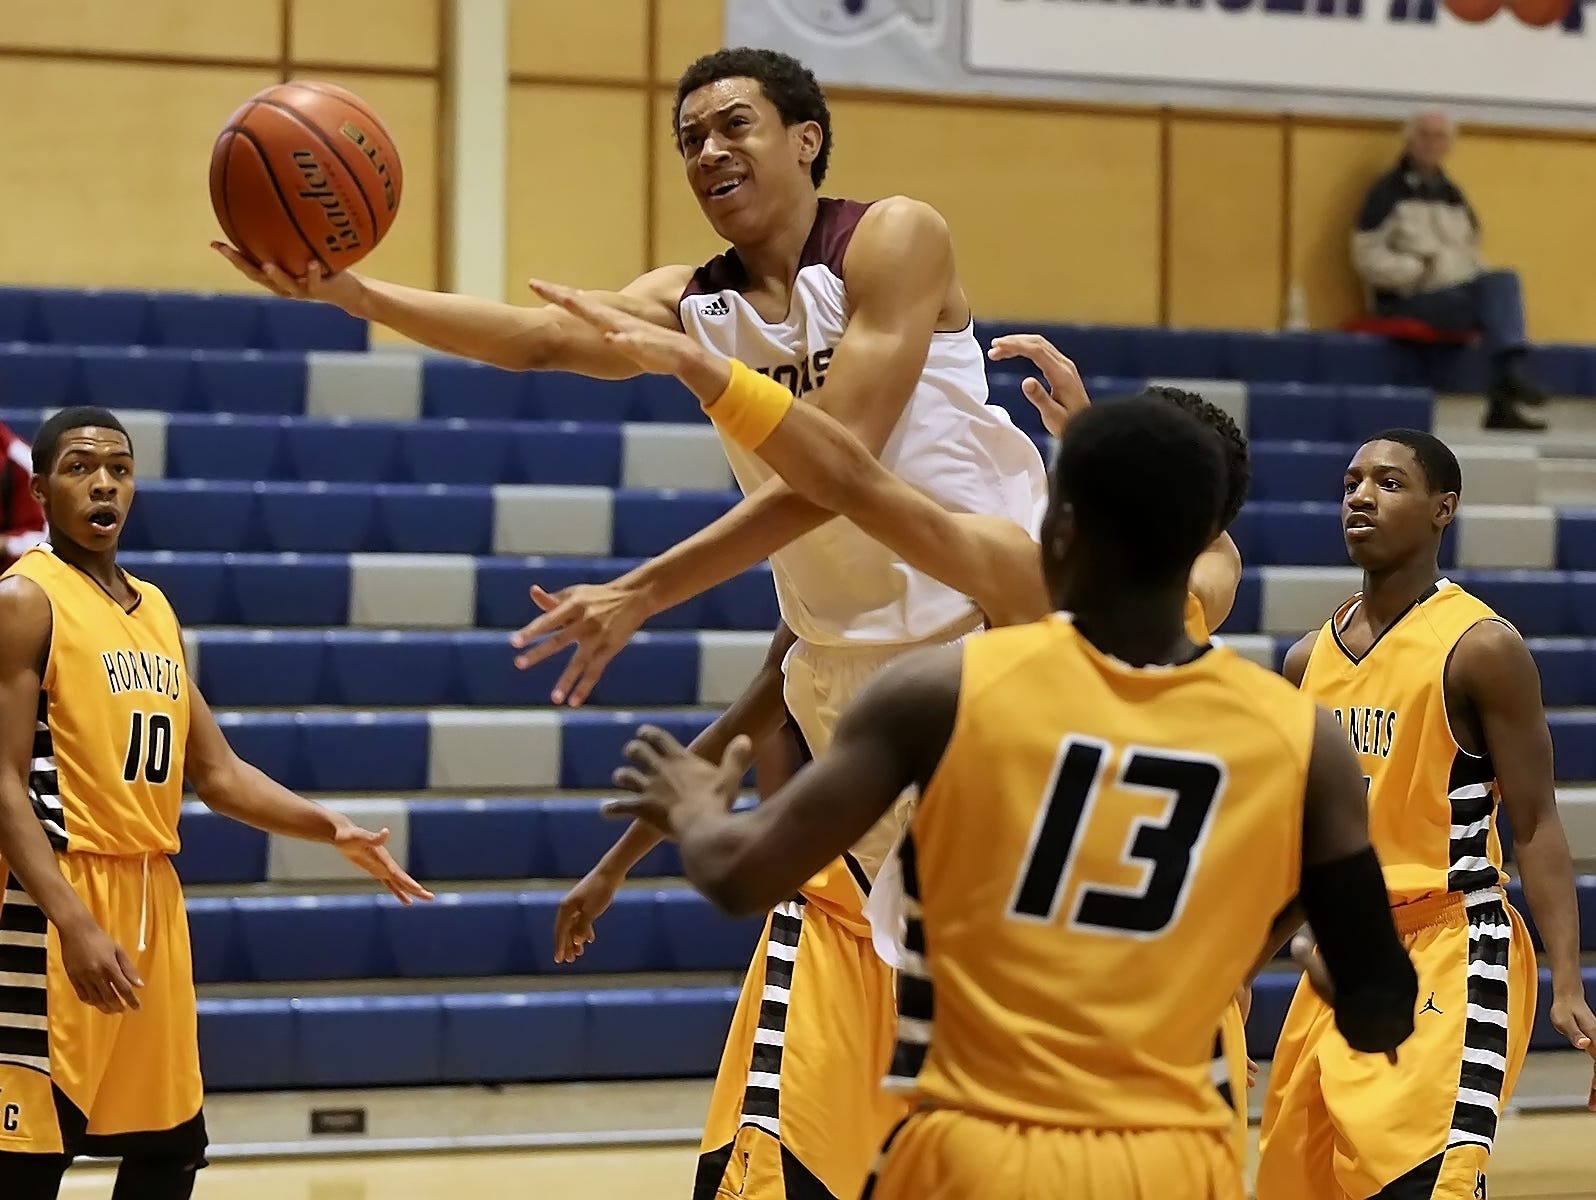 San Antonio Christian senior forward Justin Robinson, driving to the basket against East Central, will be a walk-on player at Duke next season.